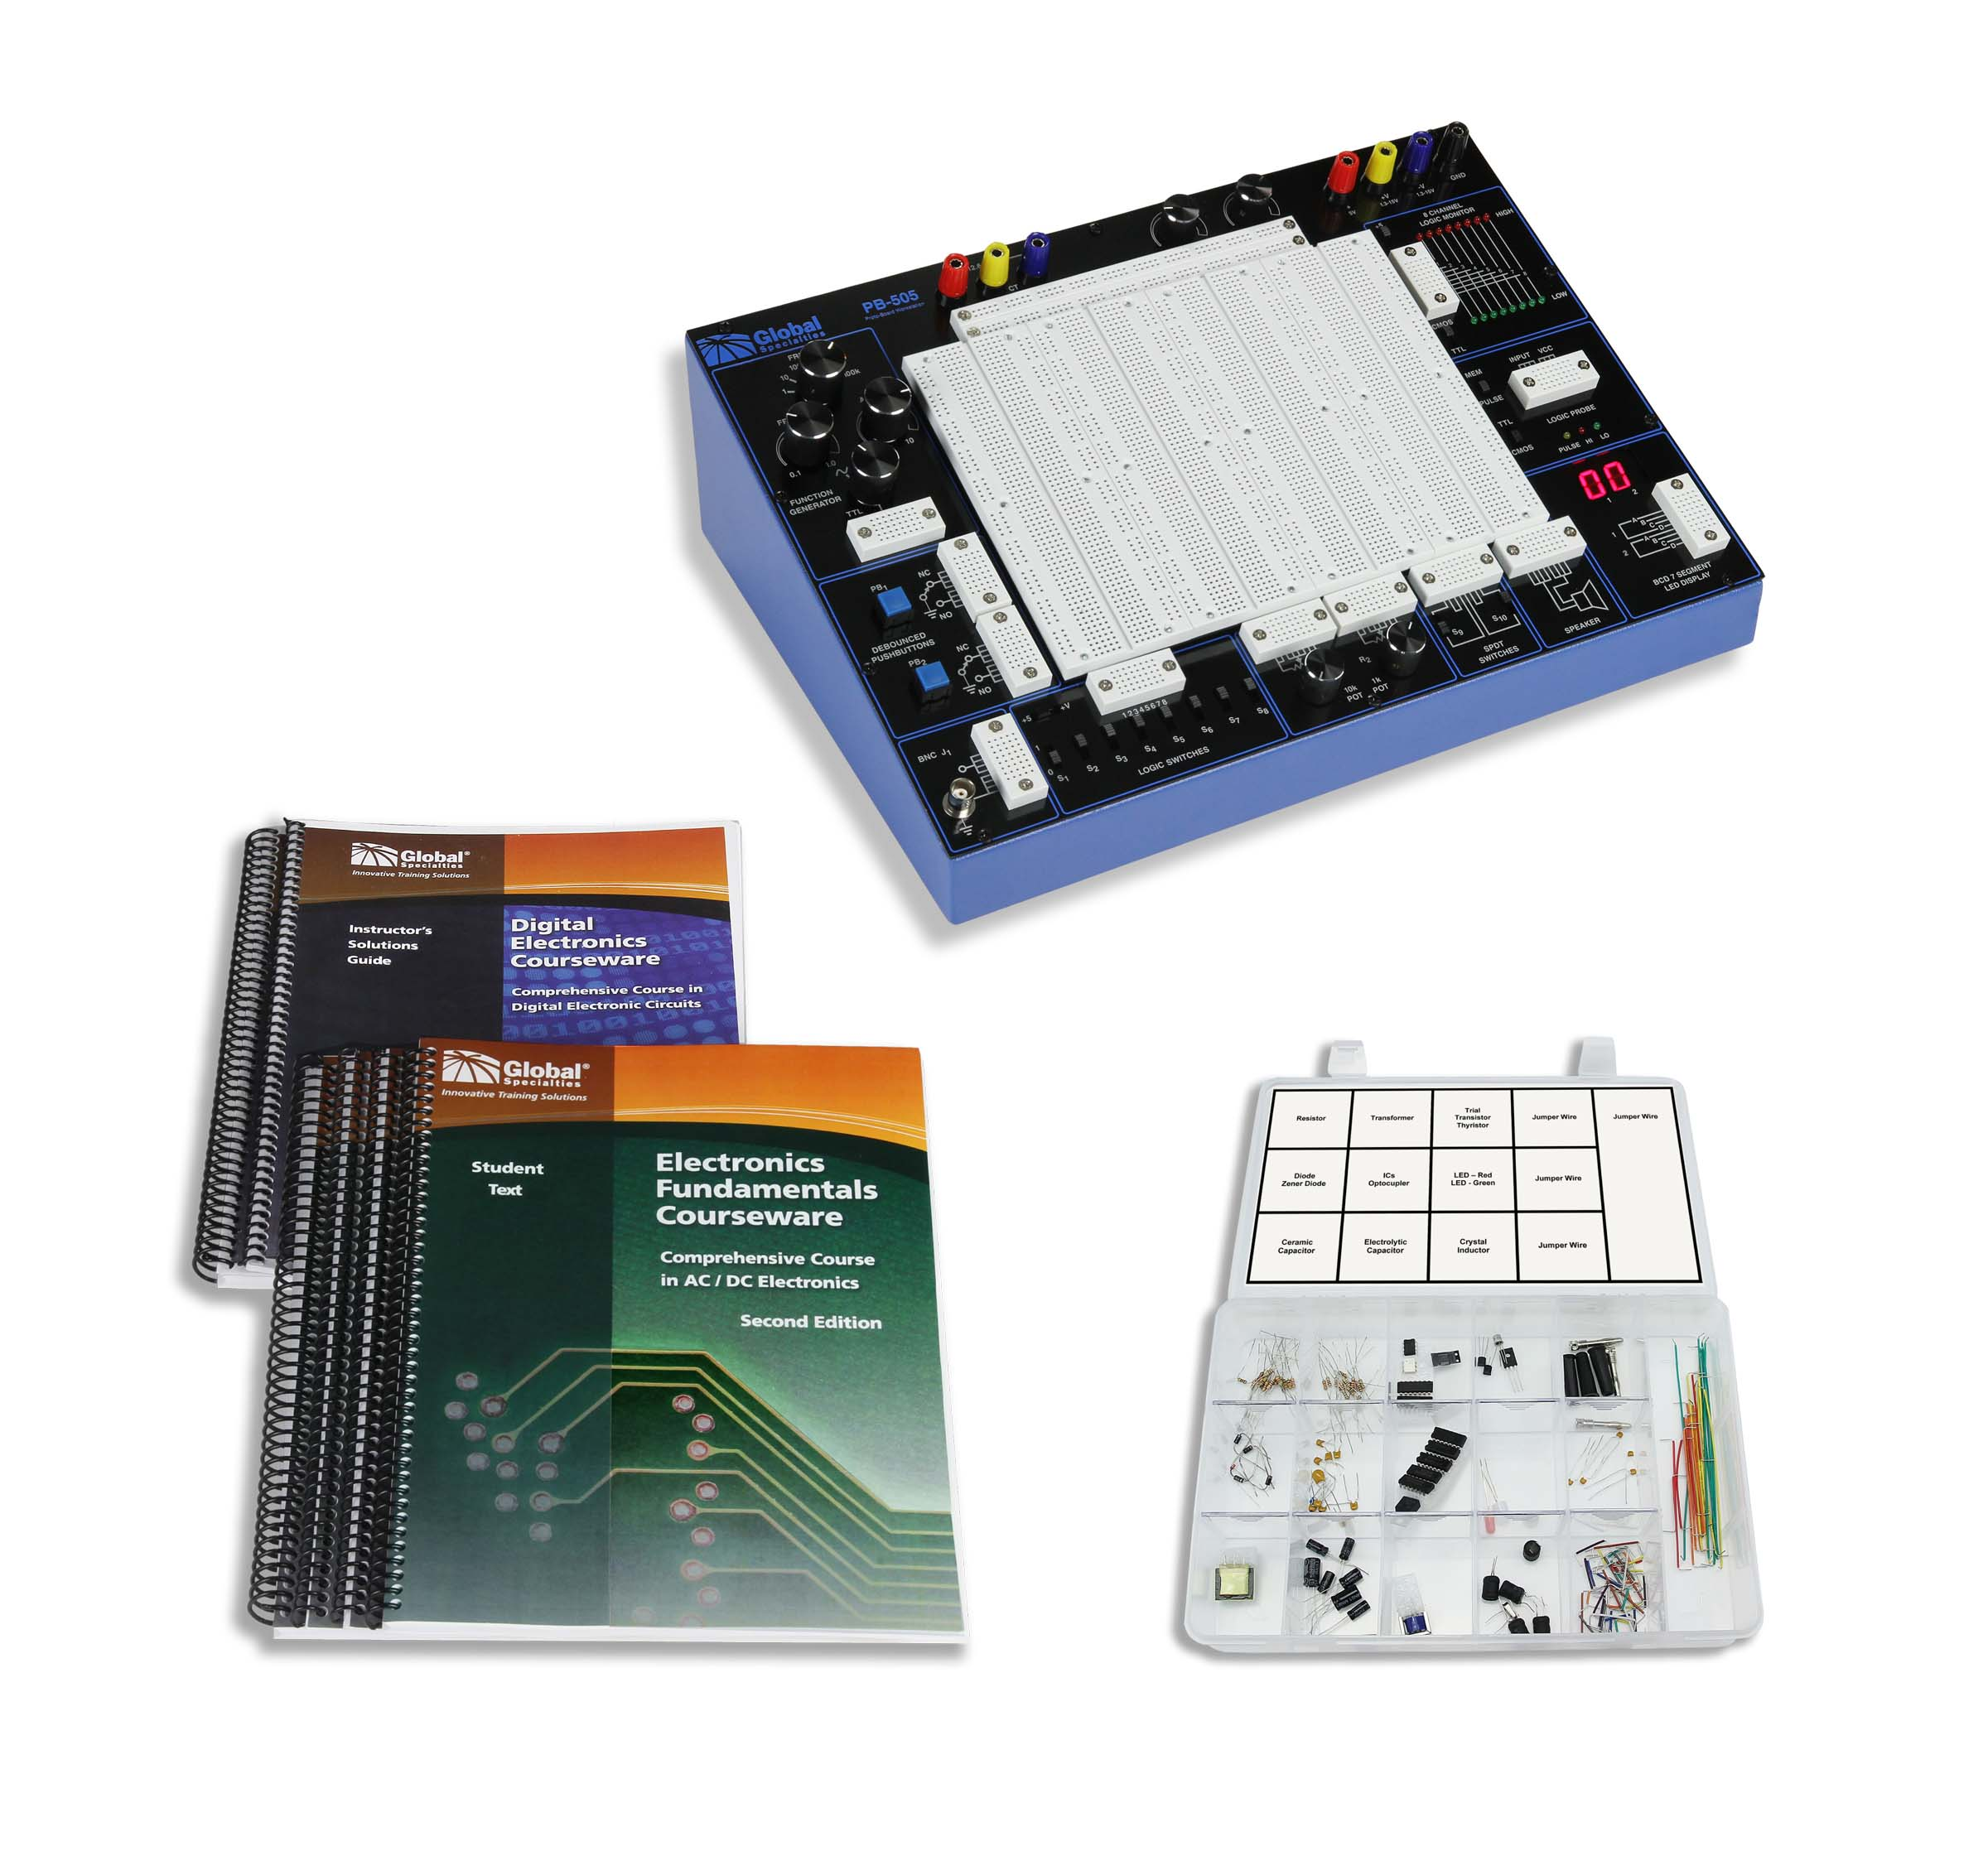 Global Specialties PB-505LAB PB-505 Plus Courseware & Kit Photo